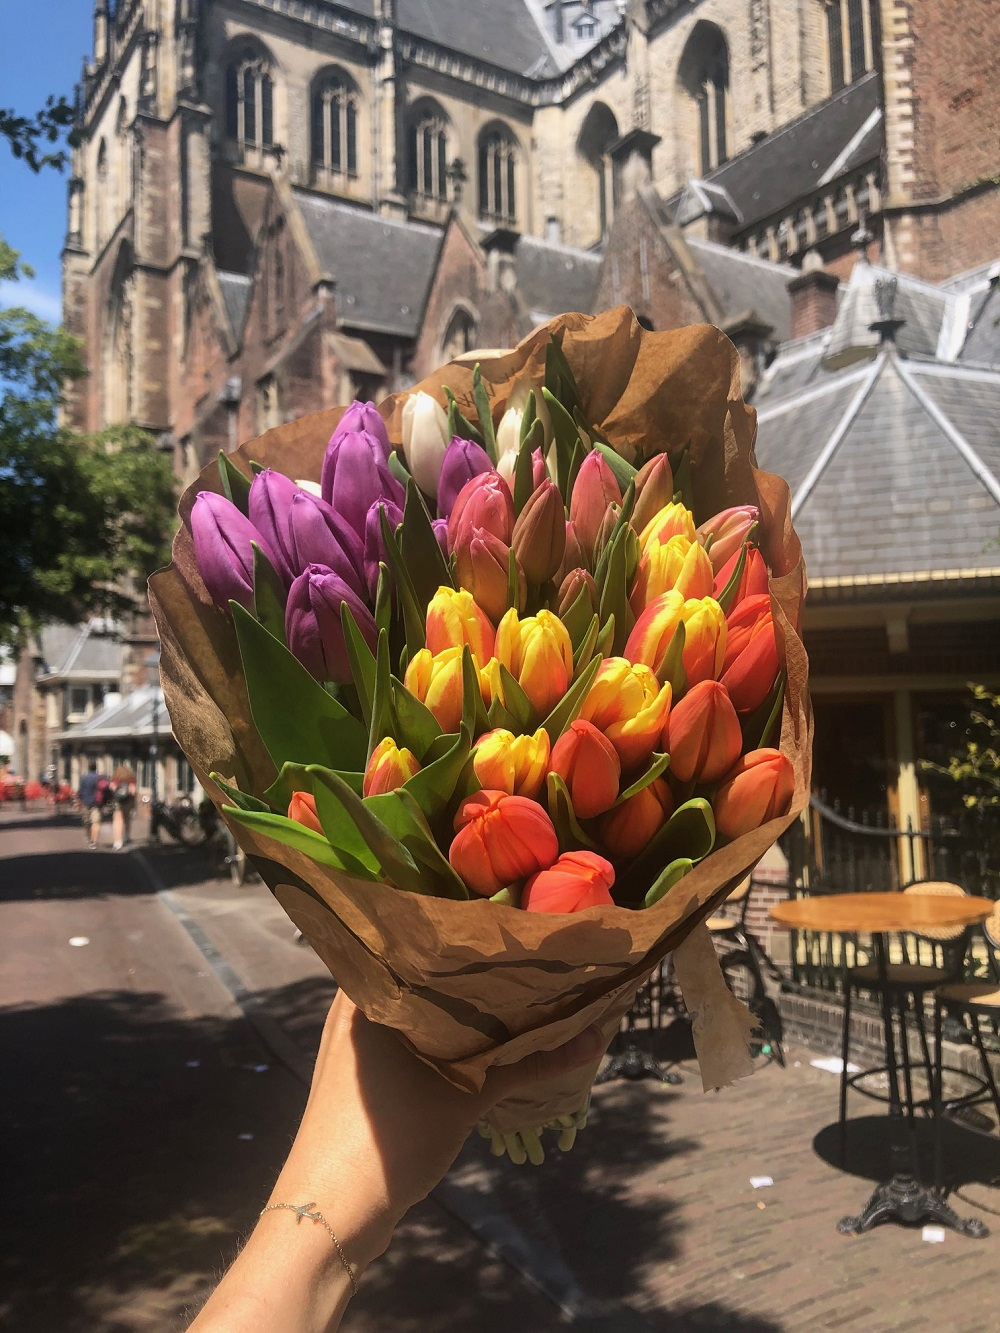 Things to do in Haarlem, the Netherlands